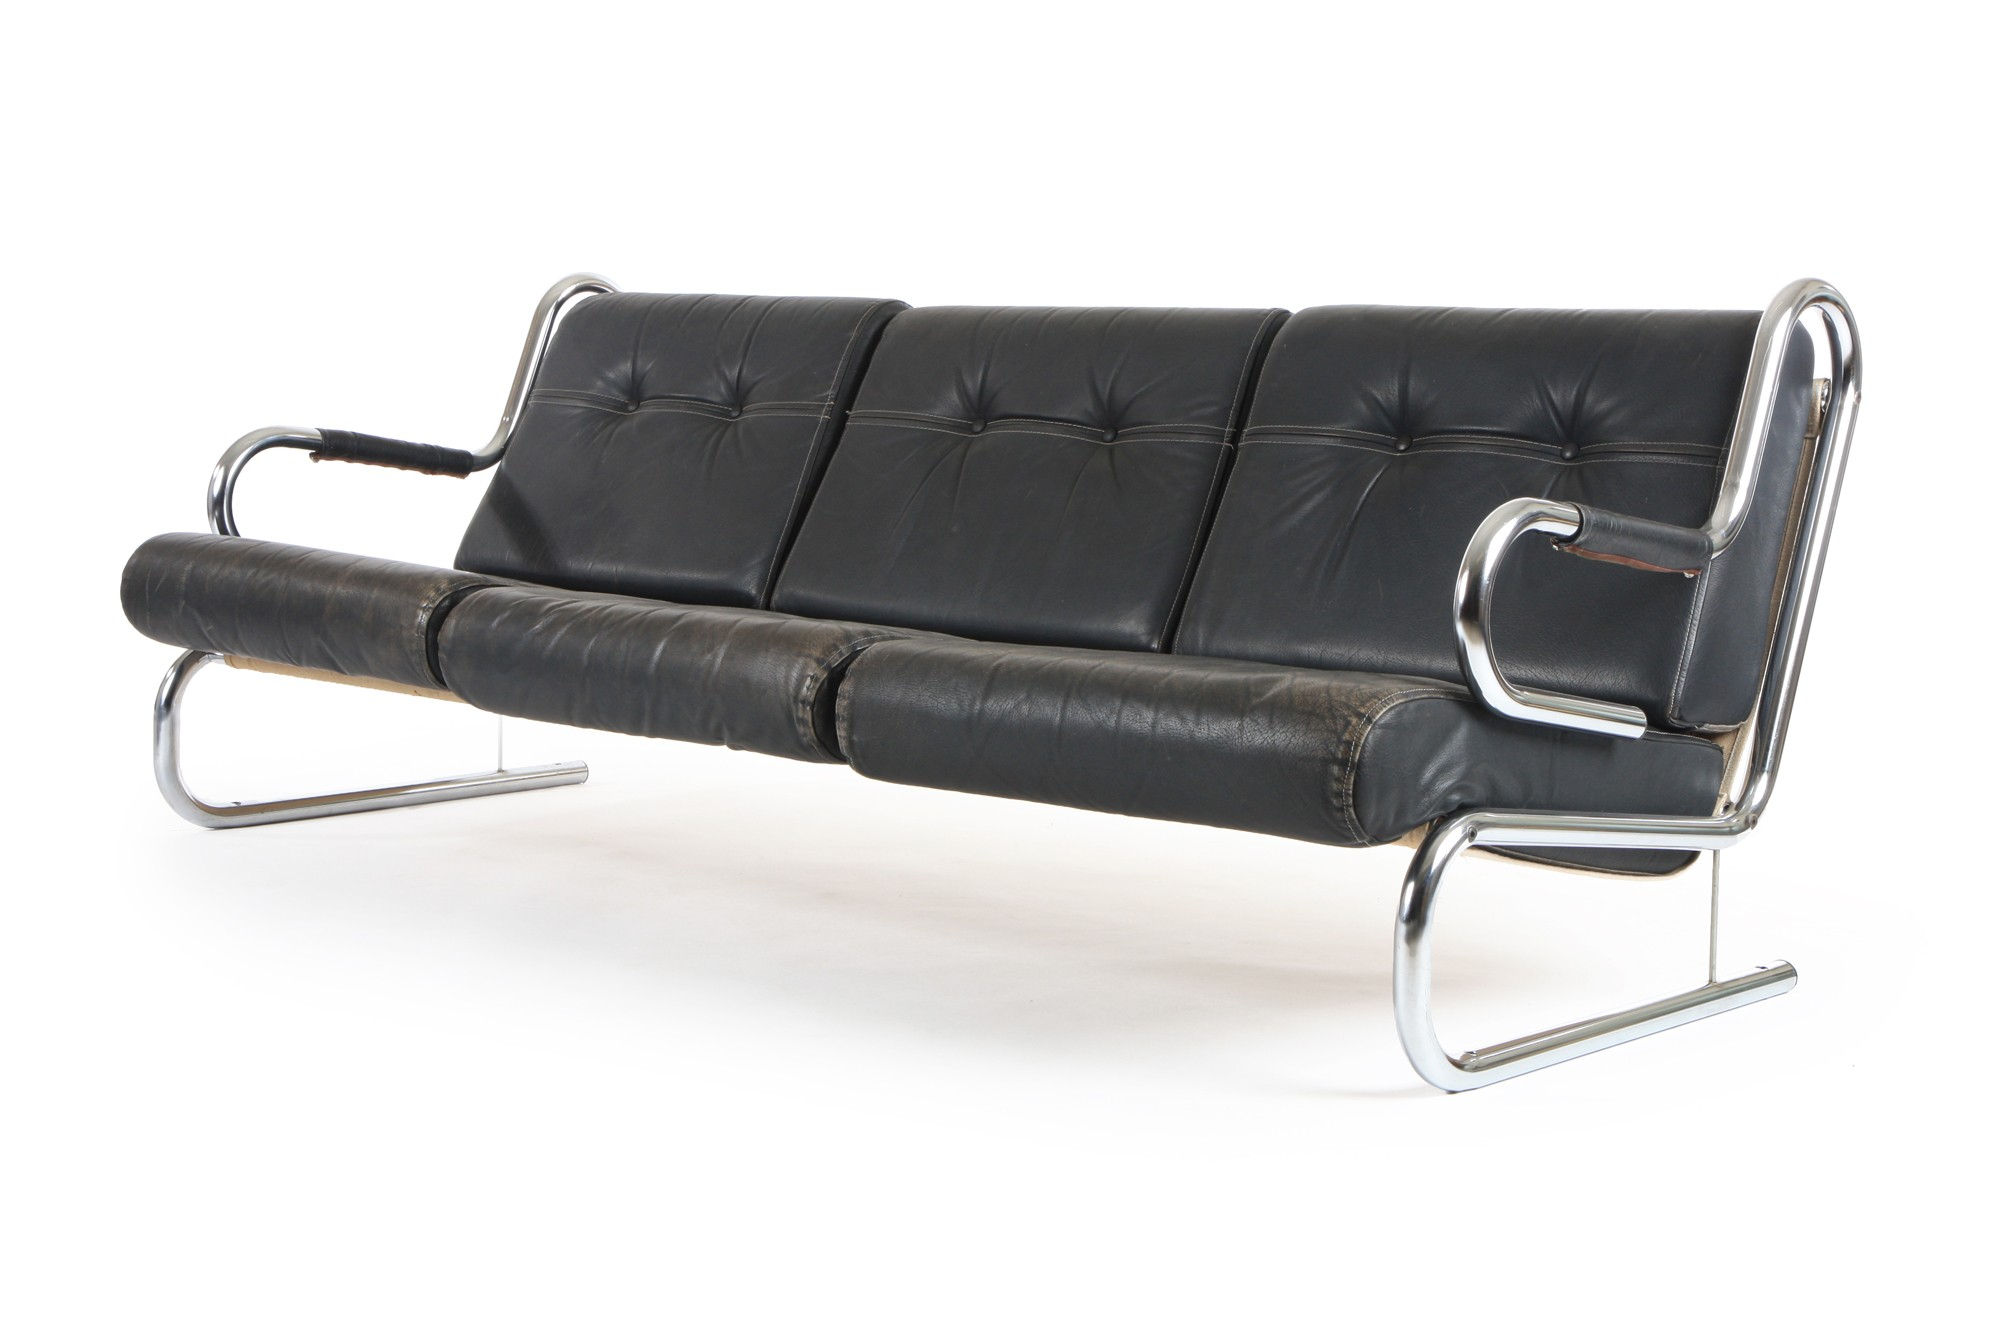 This leather and chrome sofa from Mr. Bigglesworthy   is characterised by a refined lightness of form, flowing lines and the perfect blending of leather and mirrored chrome. A sofa that captures the British high-tech modern style of the late 1960s.